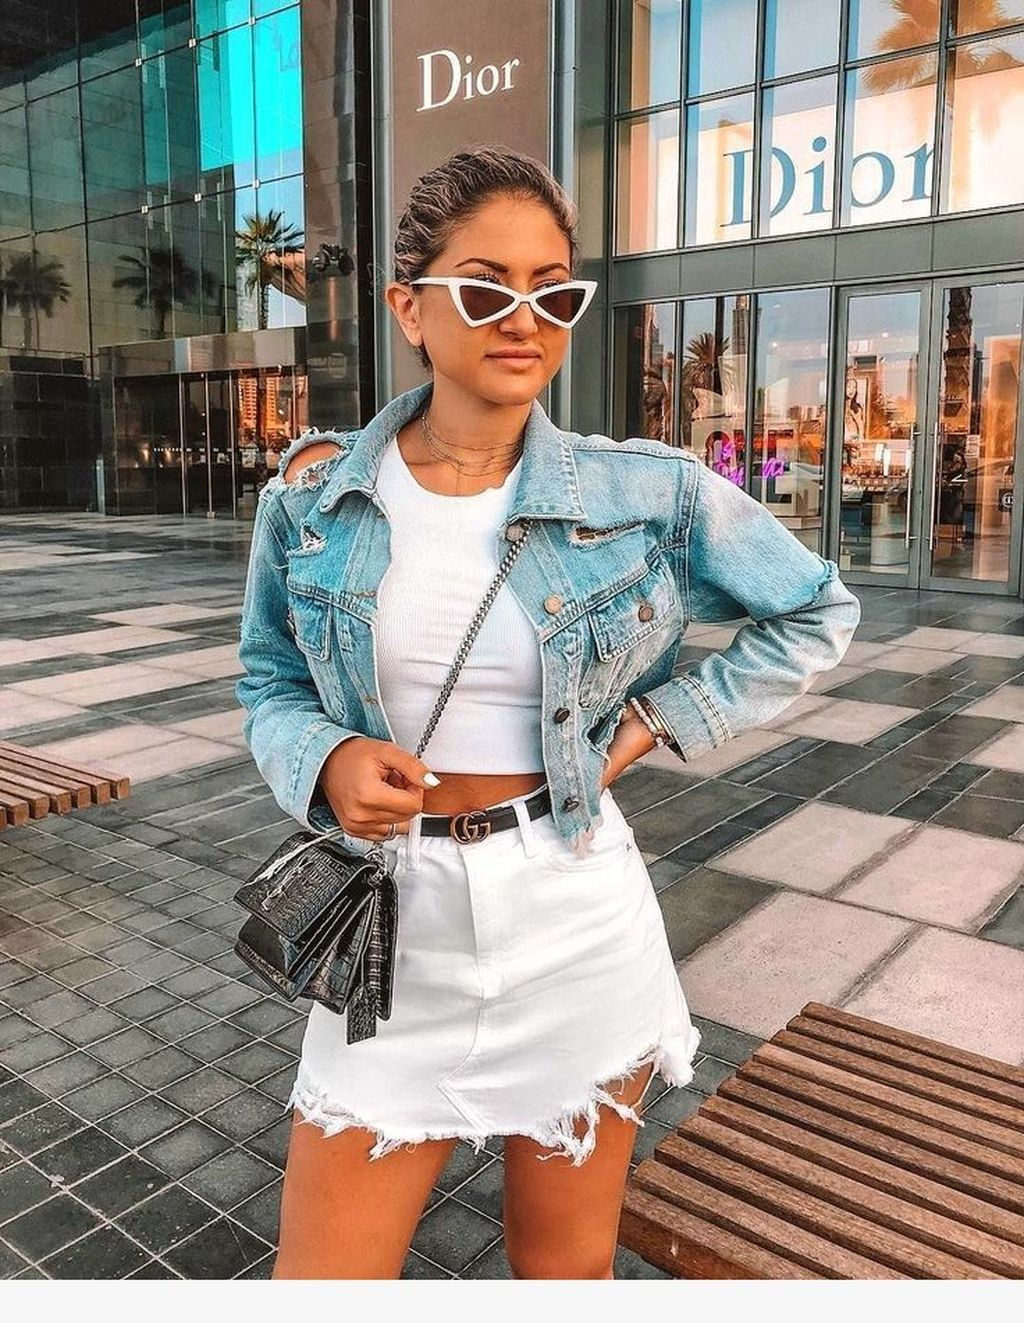 20 Fashionable Denim Skirt Outfits Ideas For Fall Denim Skirt Outfits Denim Outfit Skirt Outfits Summer [ 1323 x 1024 Pixel ]